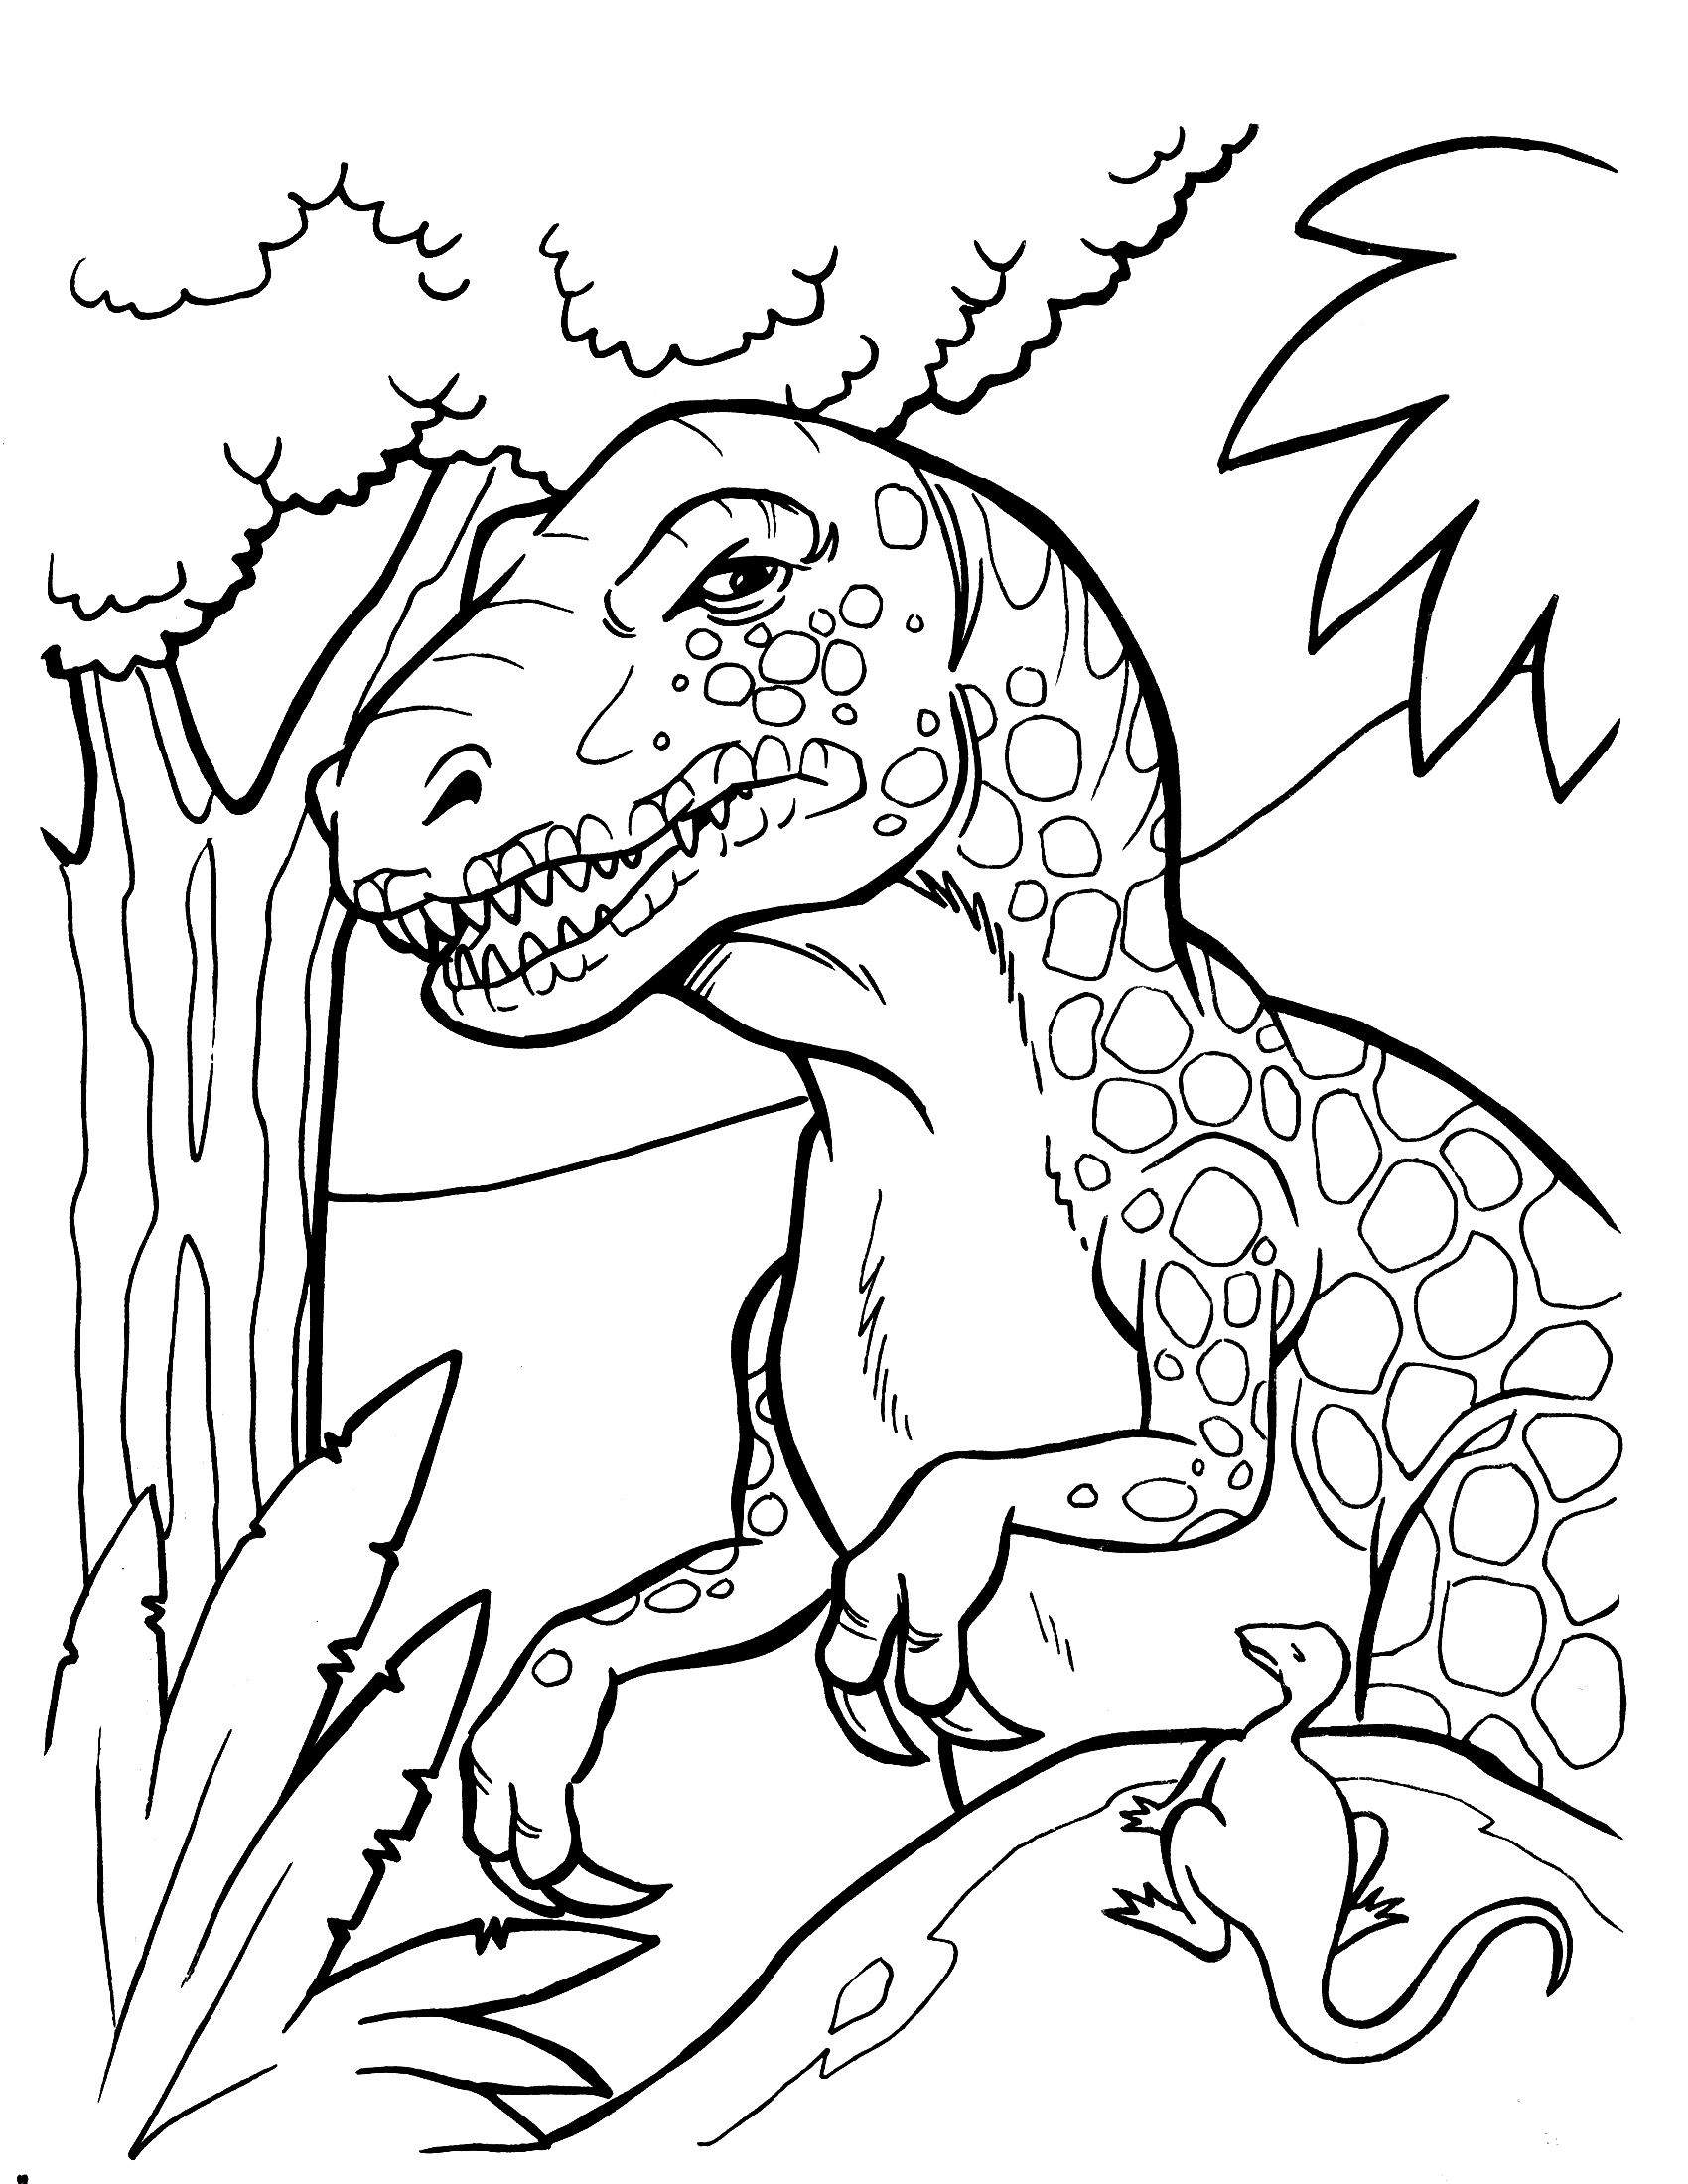 free printable dinosaur coloring pages dinosaur coloring pages 360coloringpages dinosaur free pages printable coloring